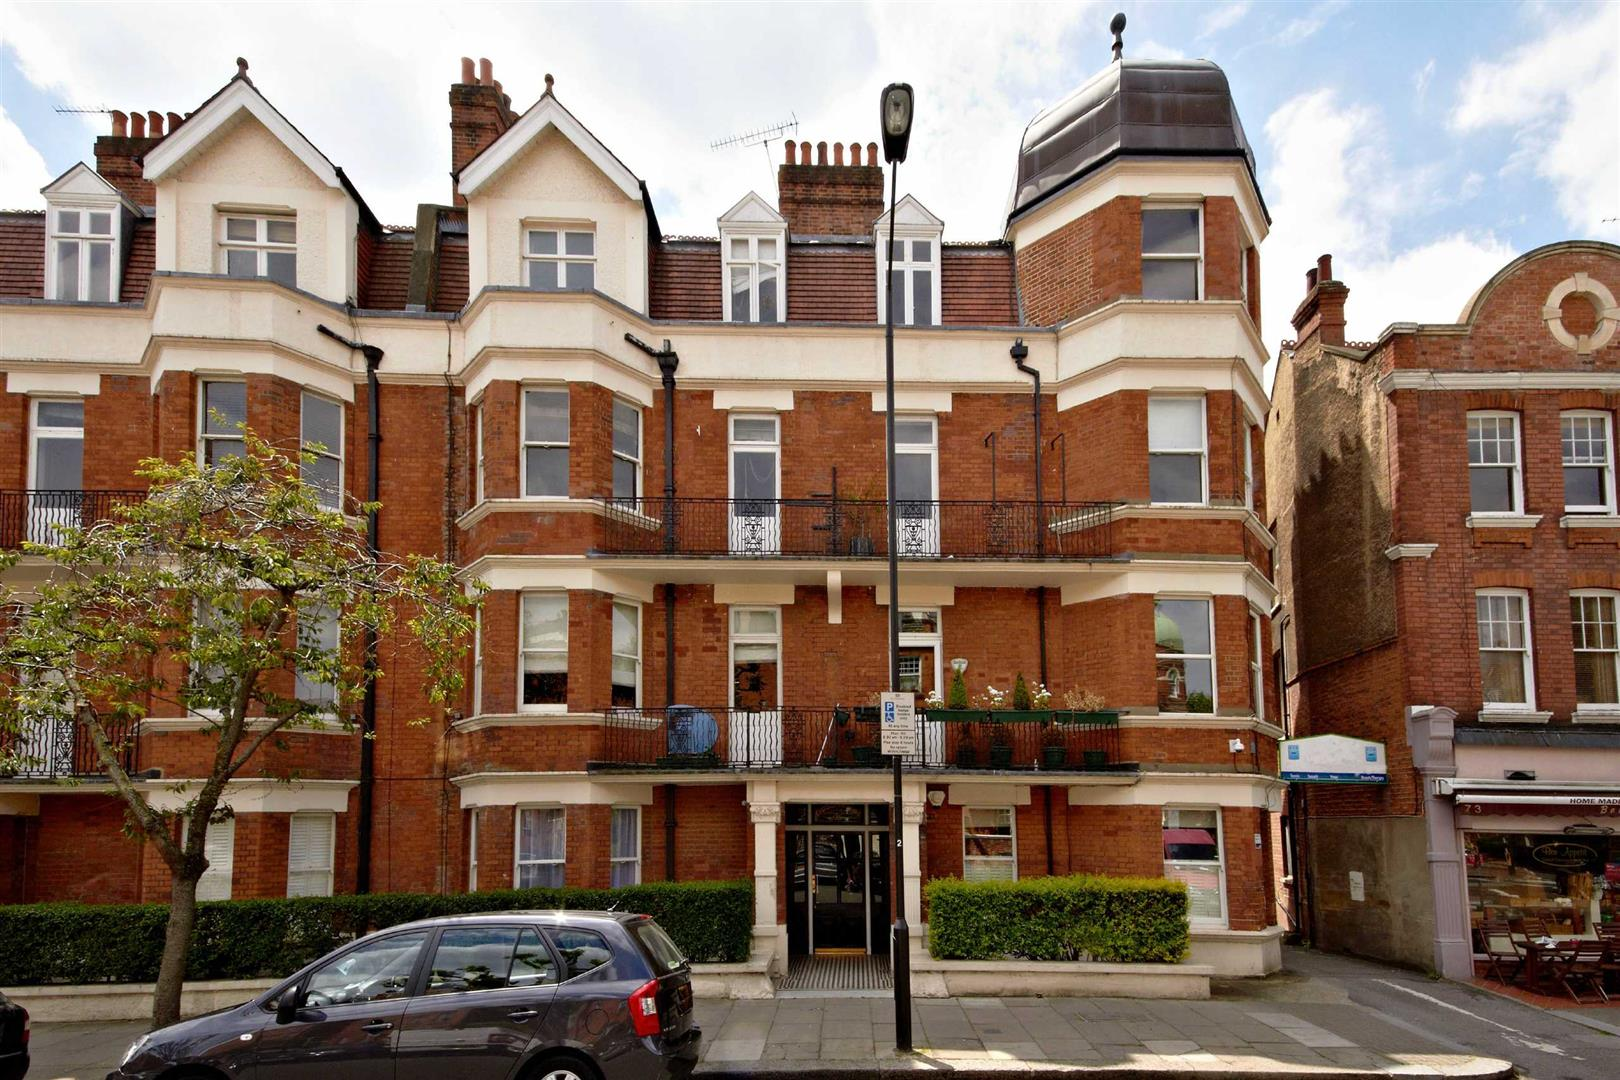 Images for Castellain Mansions, Castellain Road, Maida Vale, London